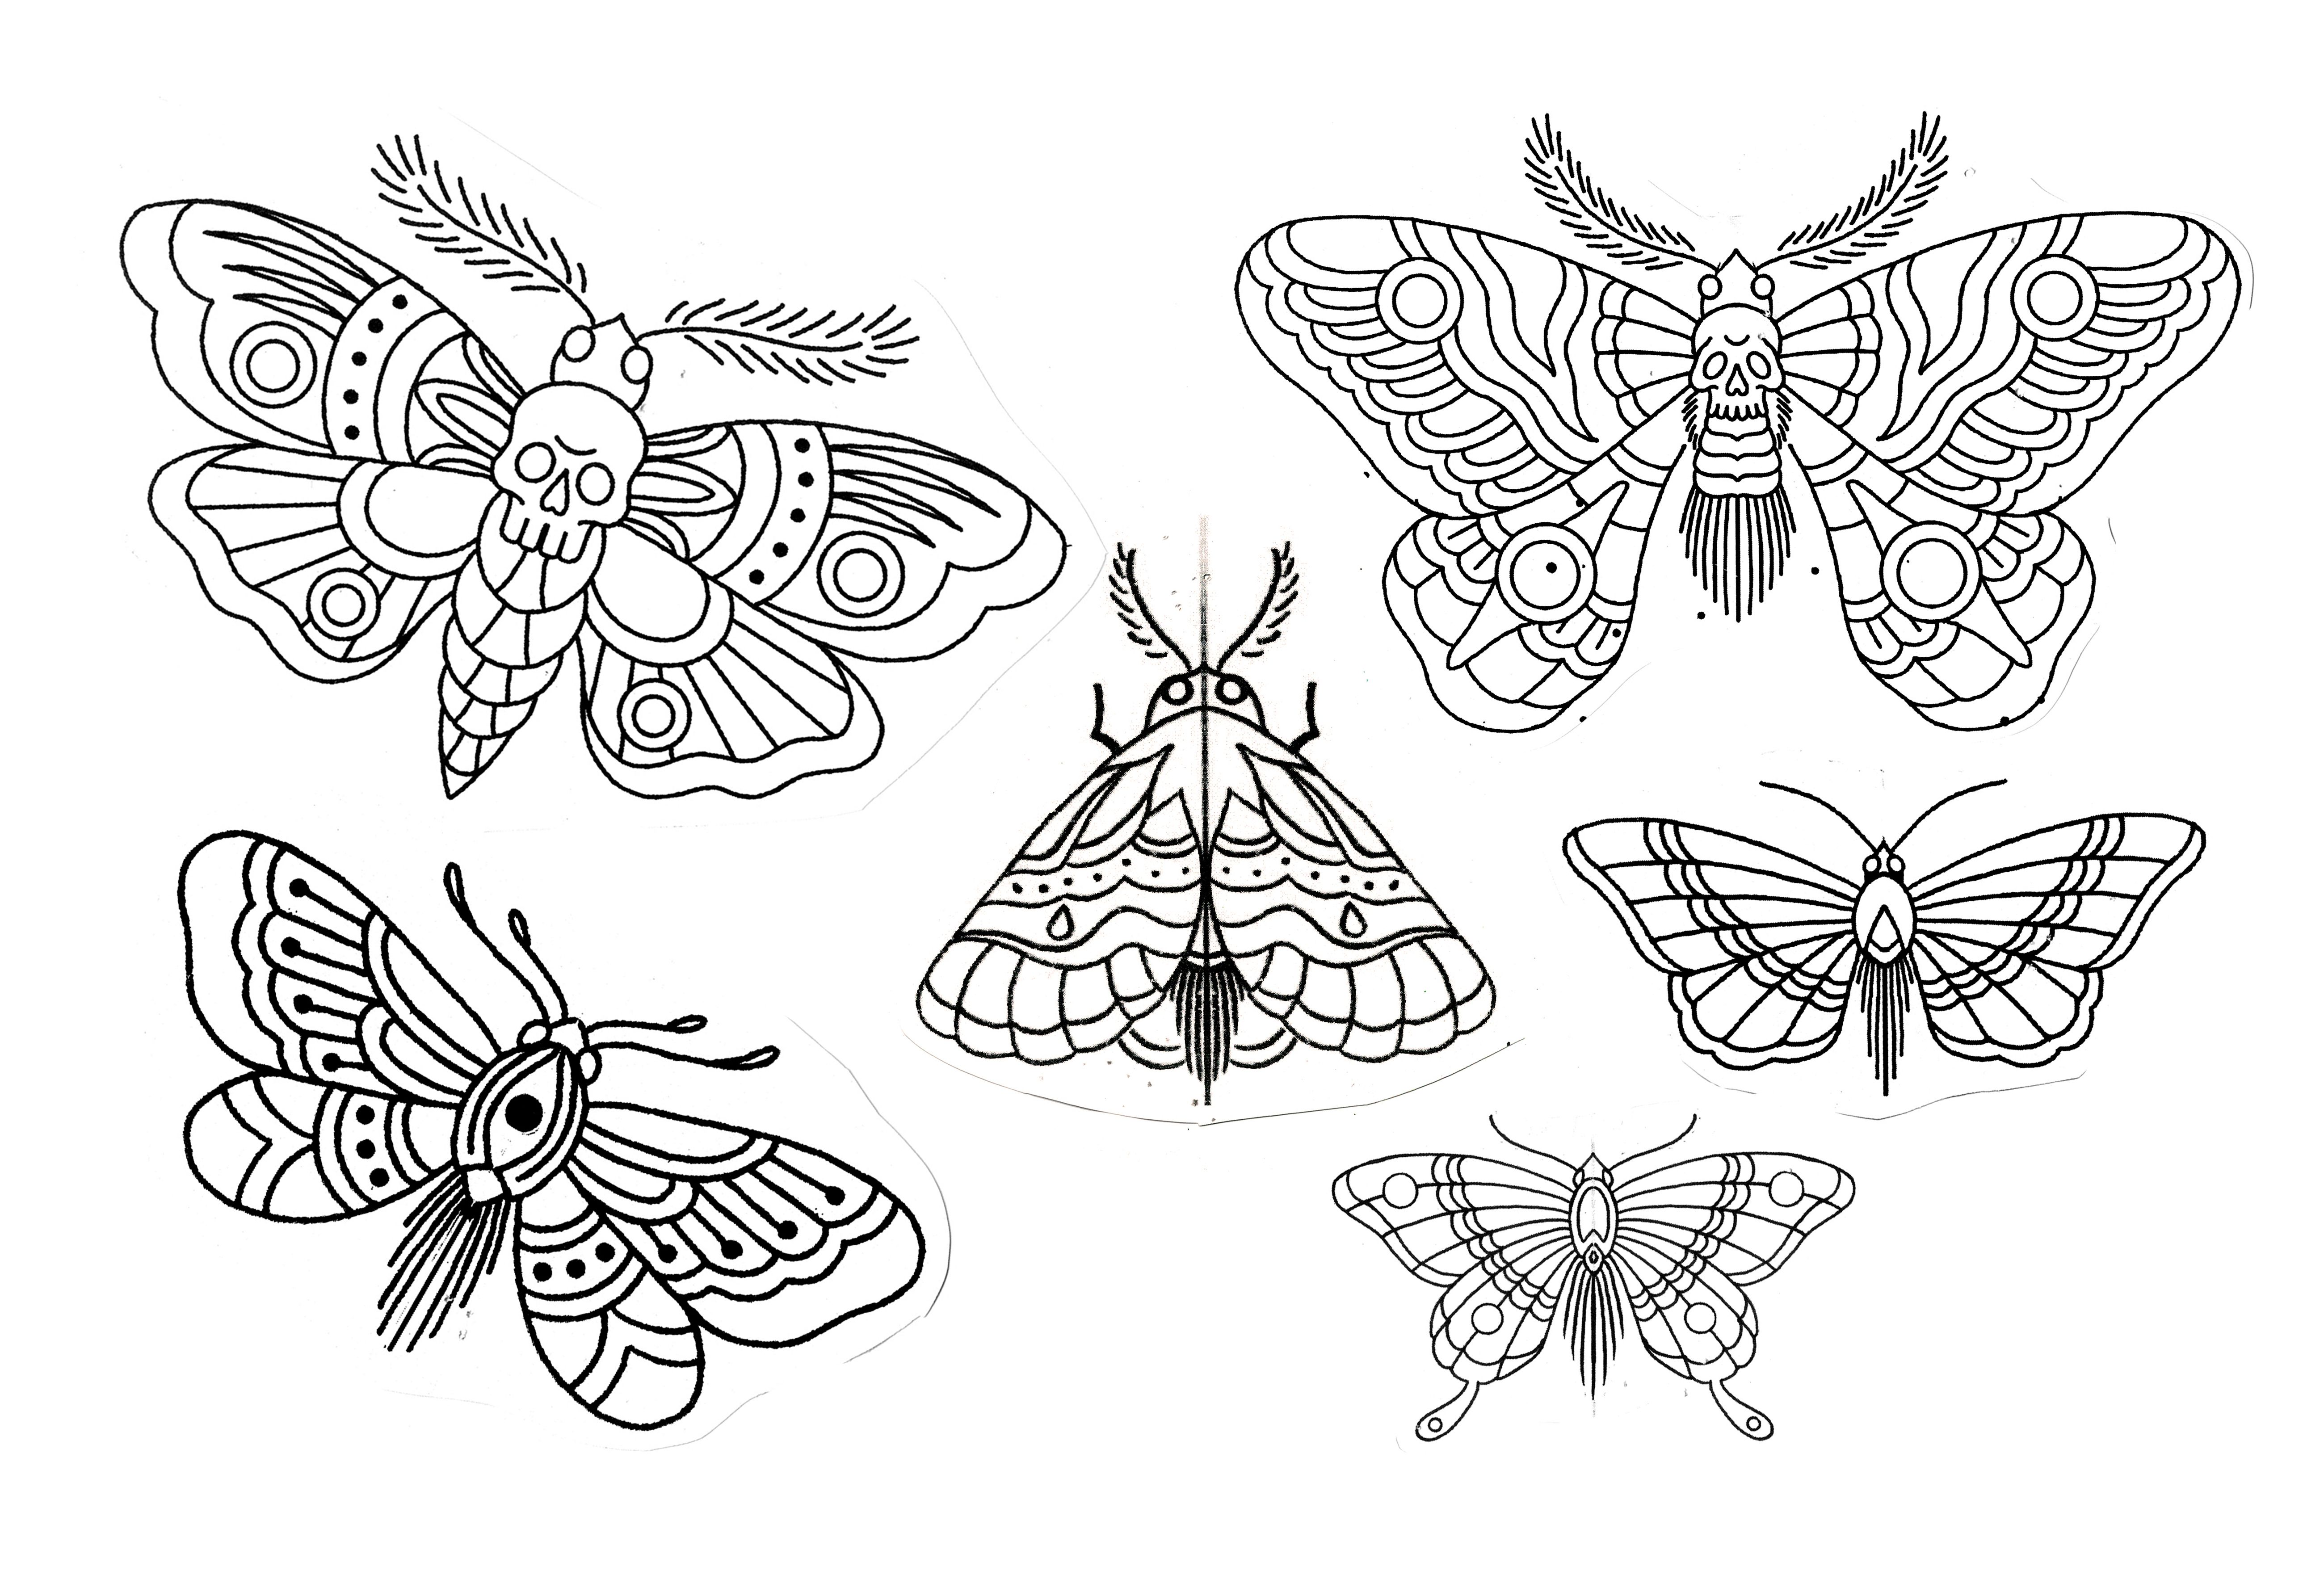 Traditional Moth And Butterfly Tattoo Flash Sketch Design Unique Butterfly Tattoos Moth Tattoo Design Black Butterfly Tattoo